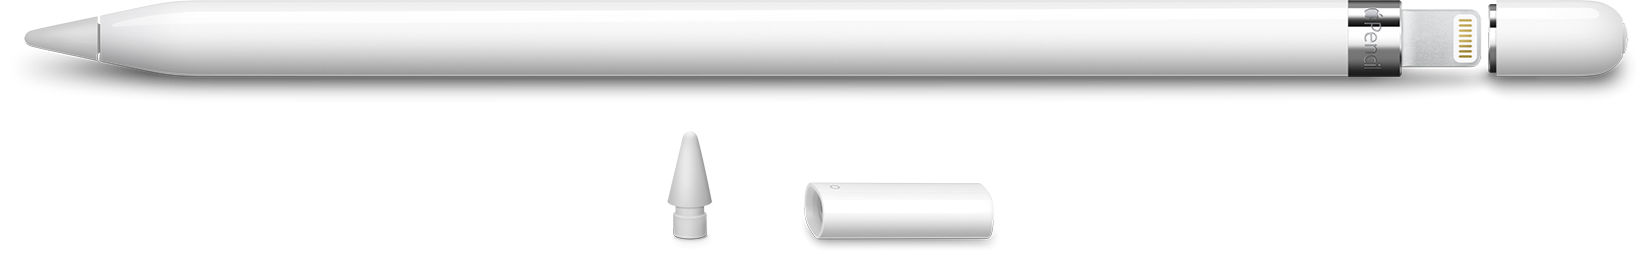 Picture of Apple Pencil